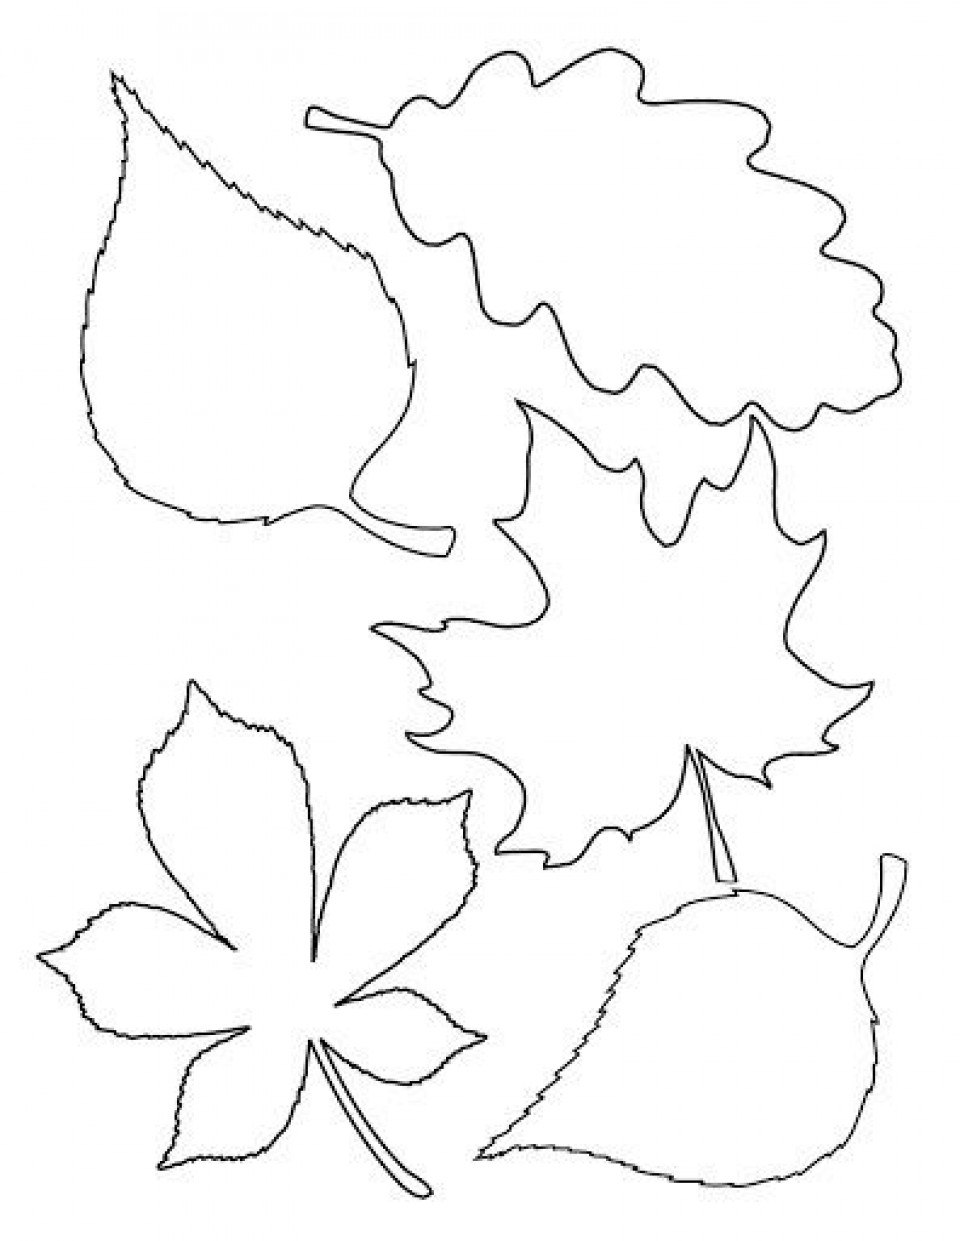 004 Unique Blank Leaf Template With Line Design  Printable960